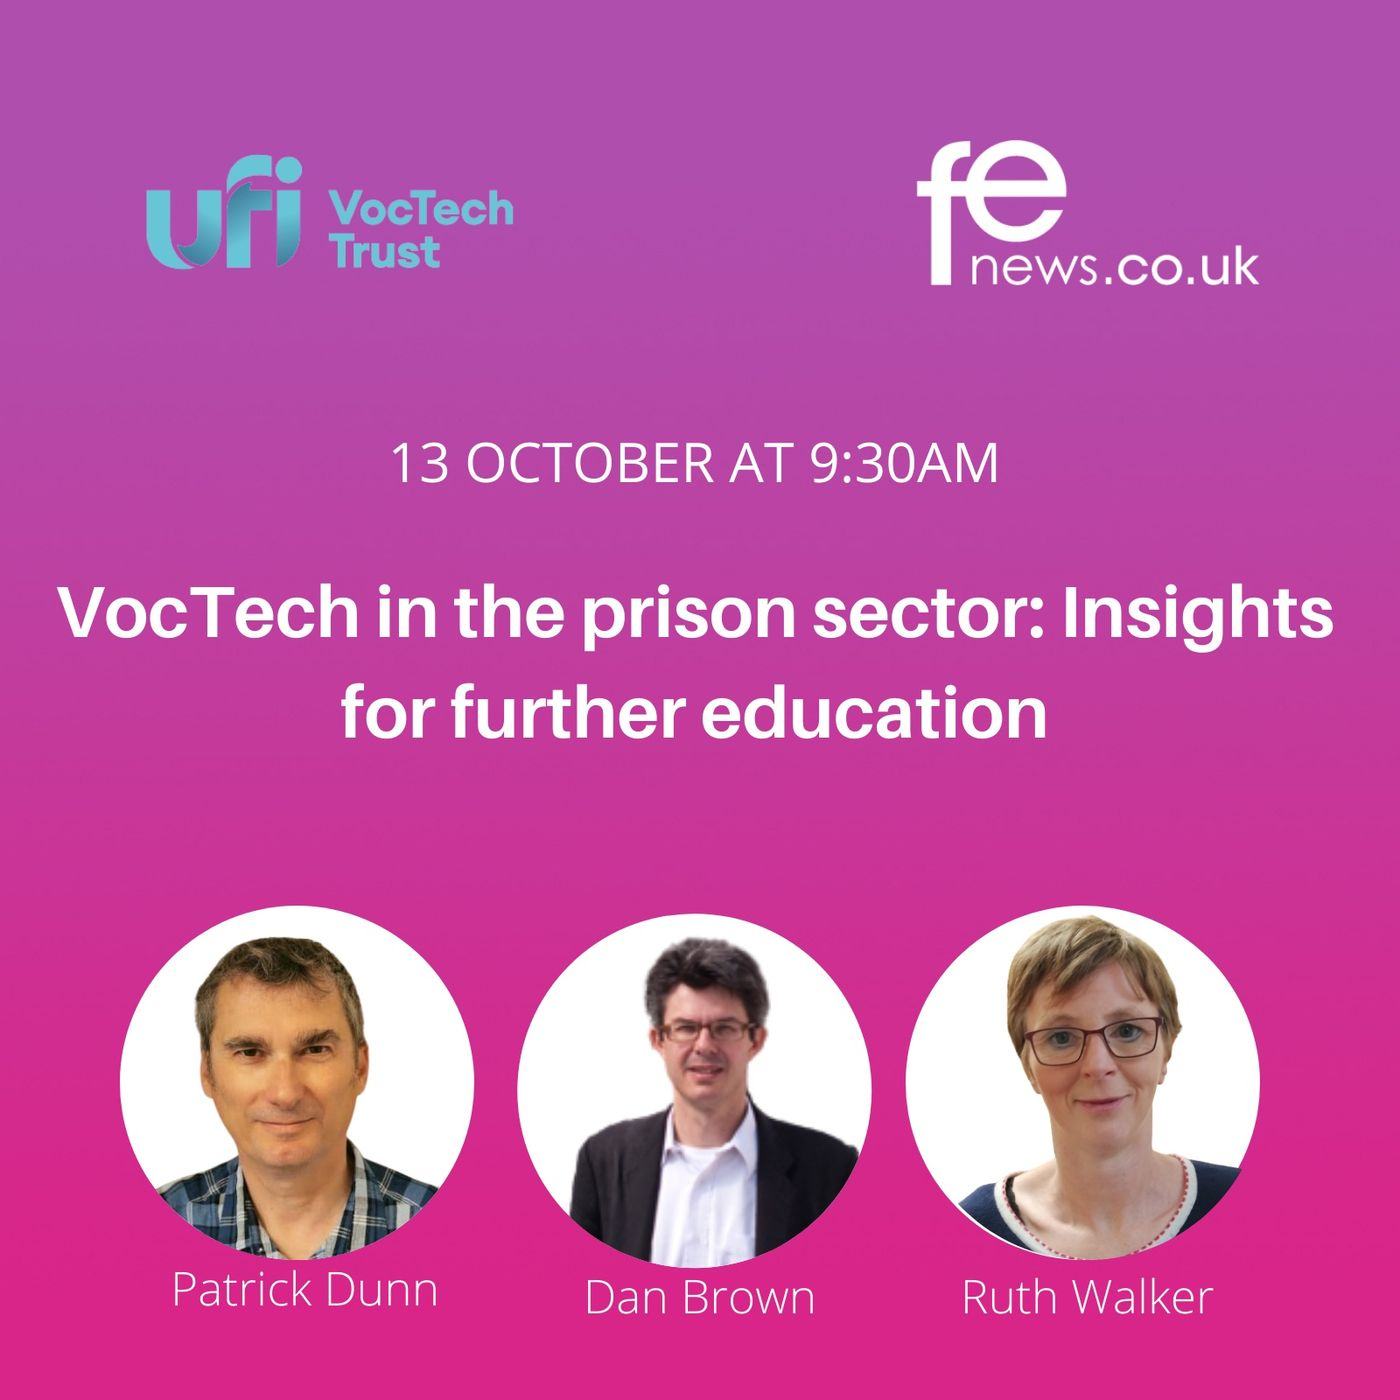 VocTech in the prison sector: Insights for further education #VocTechFutures Episode 2